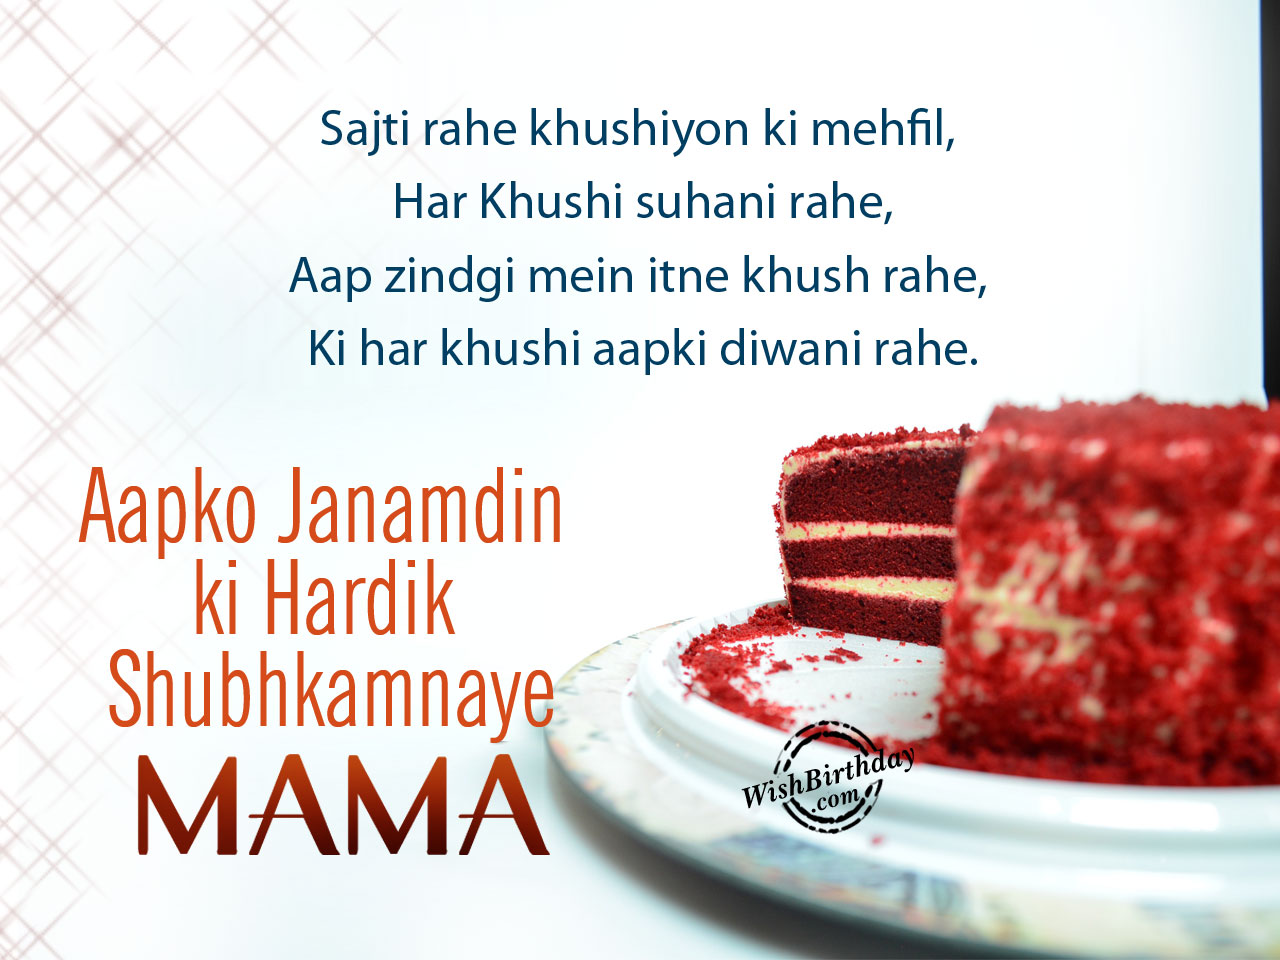 Birthday Wishes For Mama Ji Birthday Images Pictures Wishing You A Happy Birthday Quotes